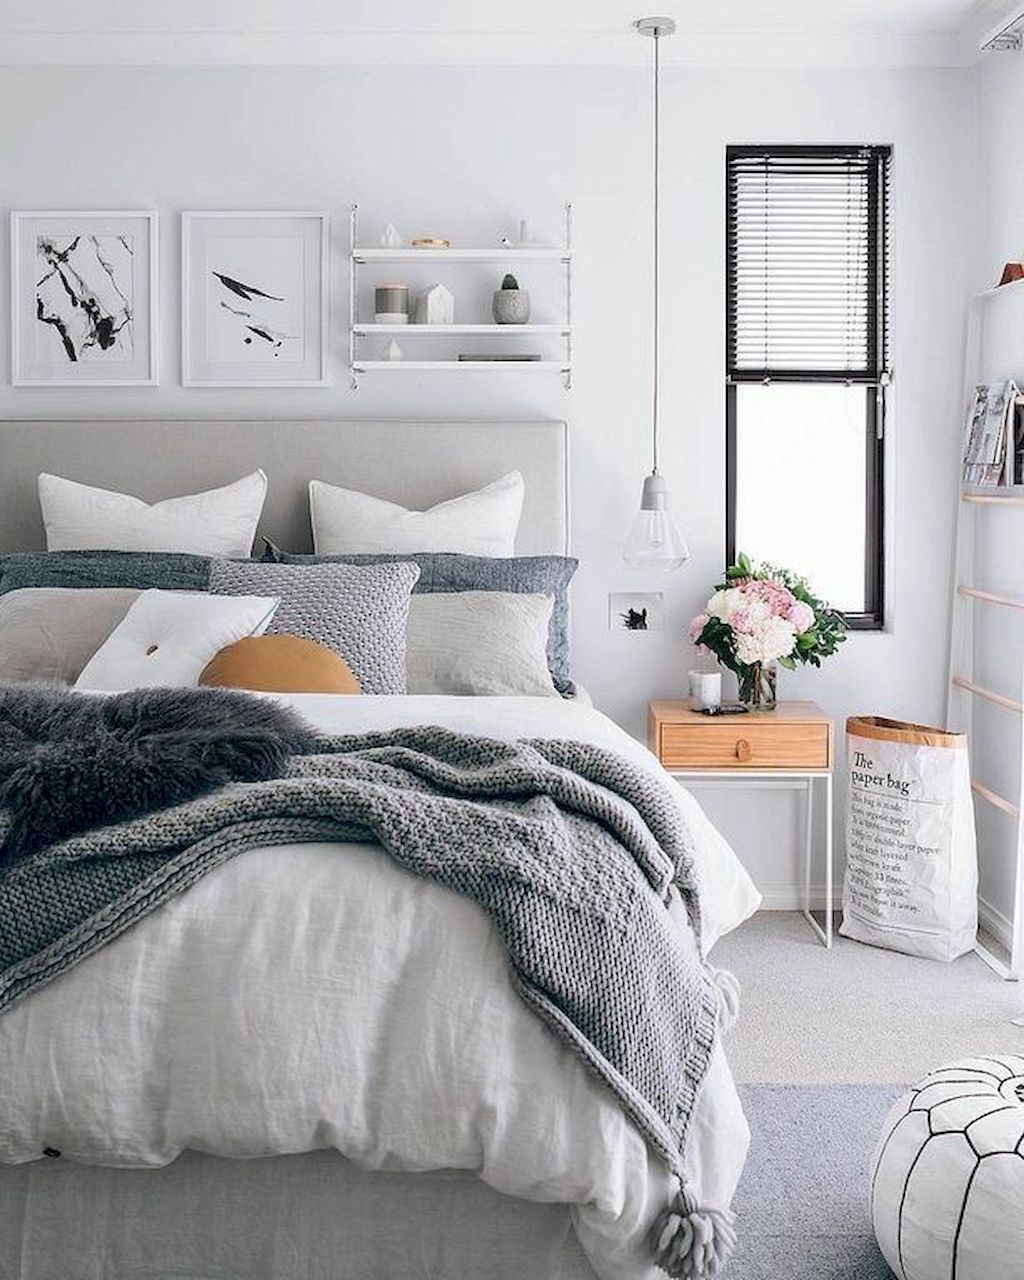 Use Of Fabric Headboard In Light Gray Sand With Gray And White